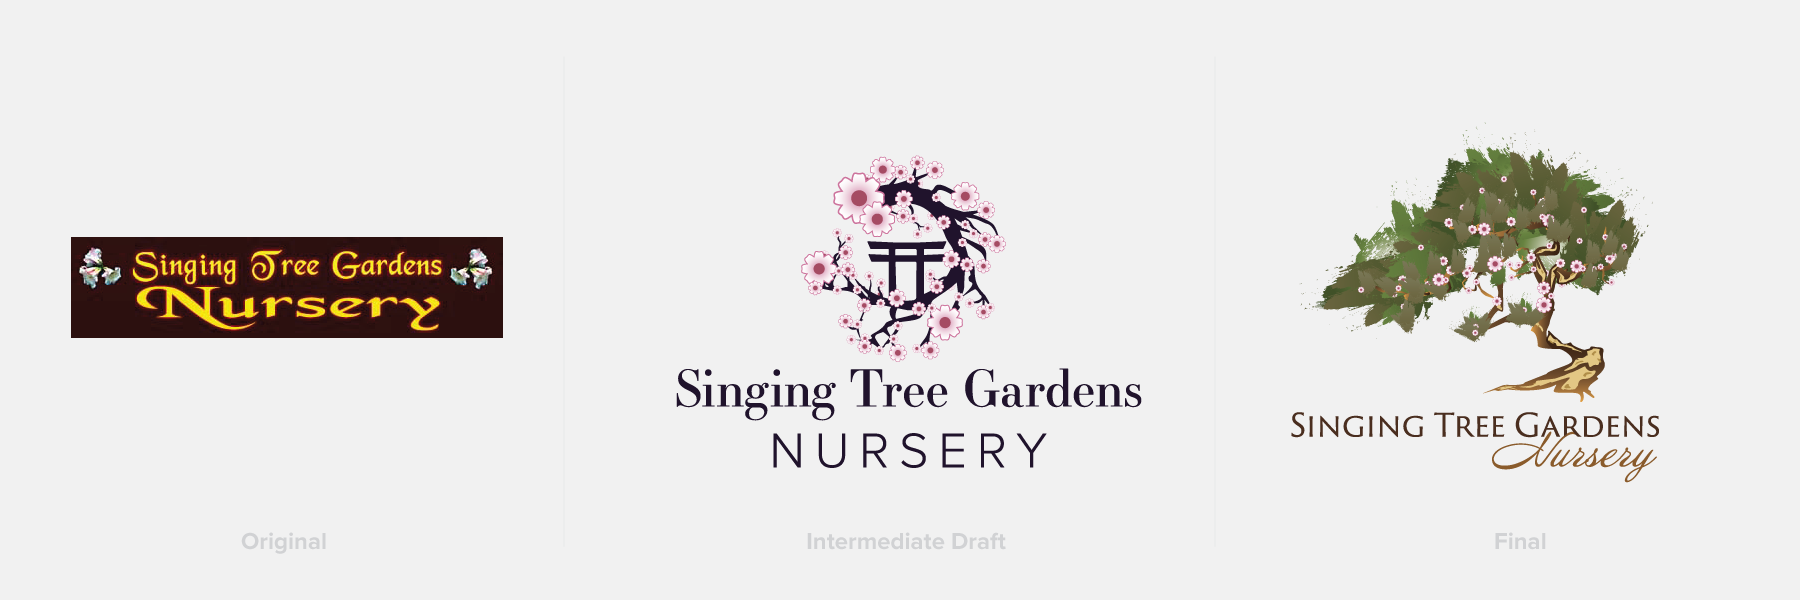 Image displaying original logo, a draft, and the final rendition of Singing Tree Gardens